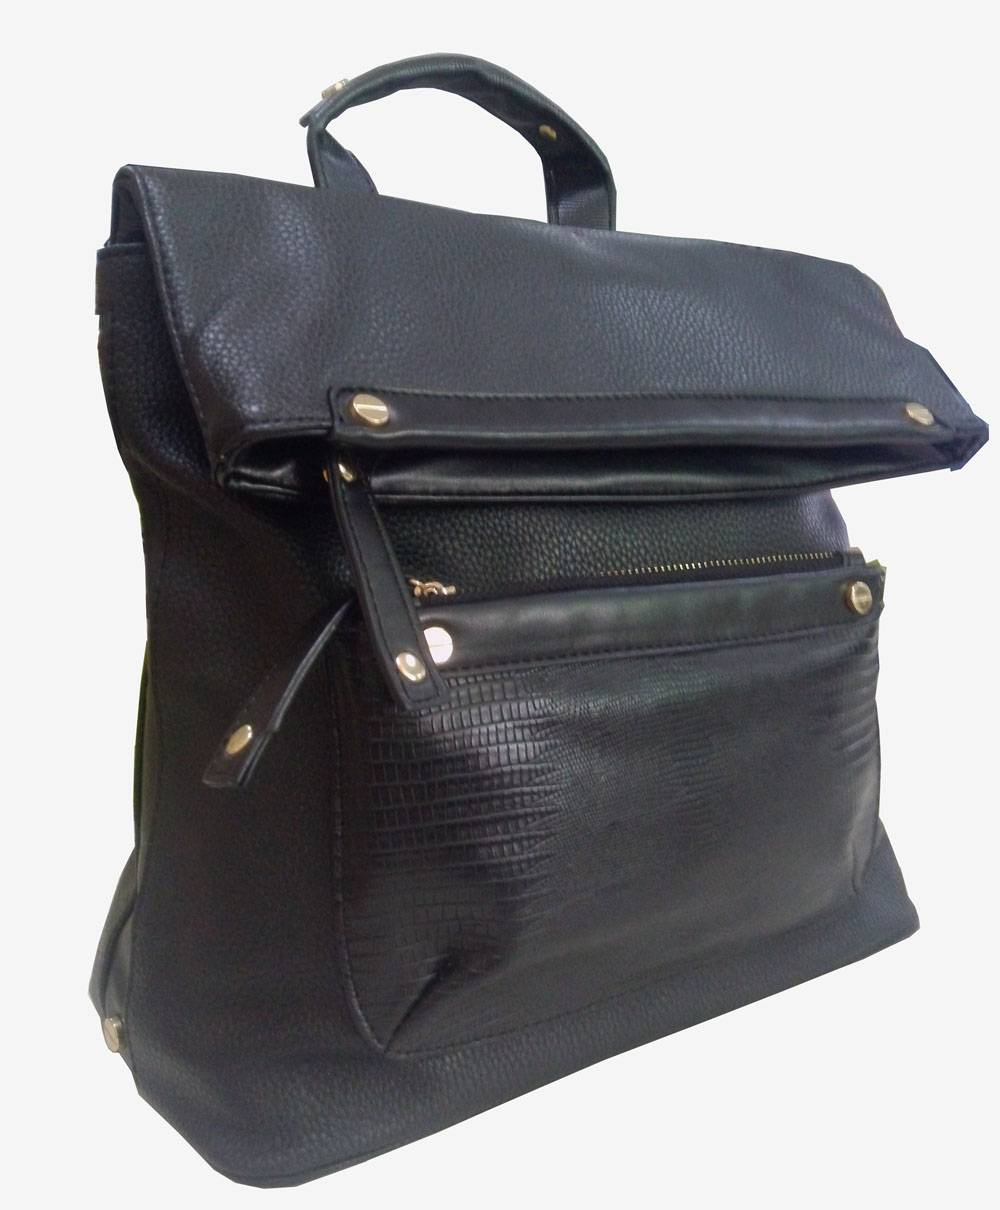 Handbags-front zip pocket backsack